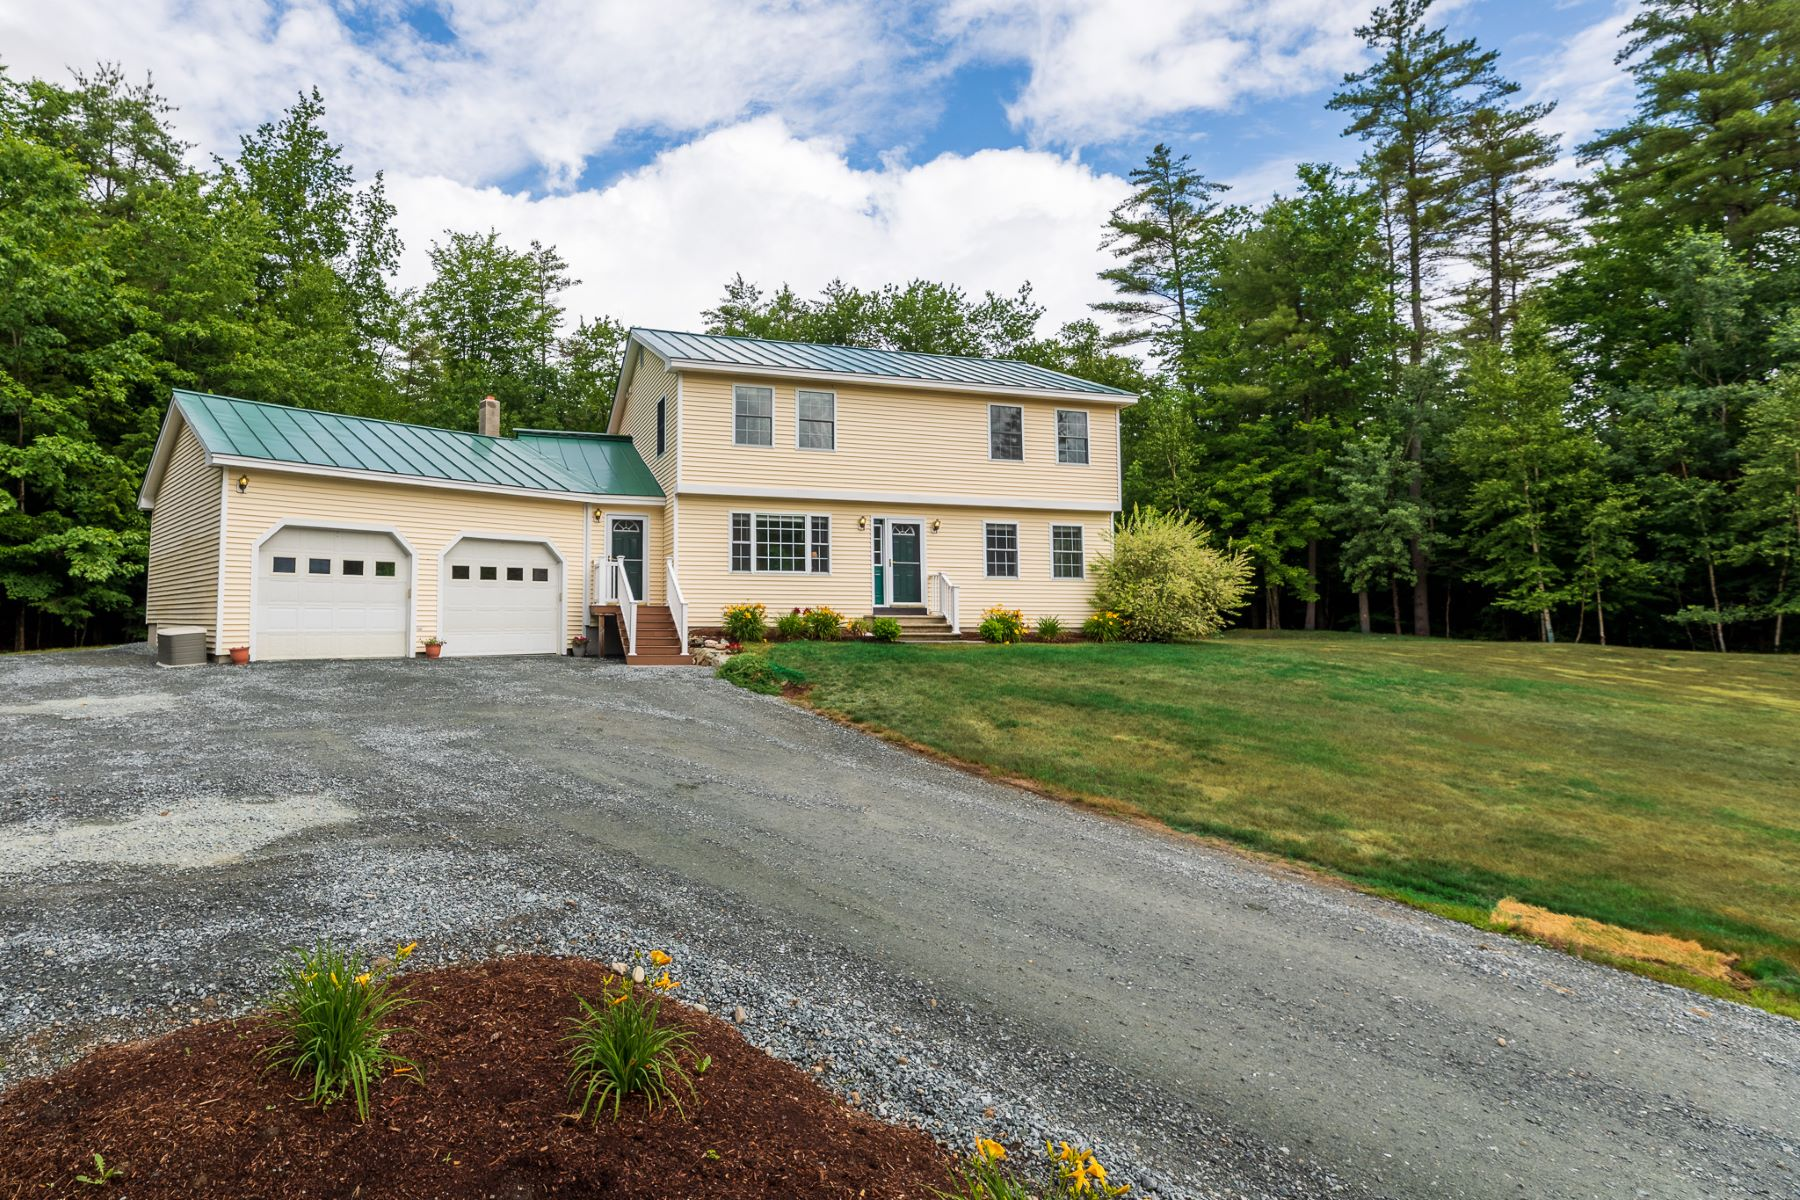 Single Family Homes for Active at Three Bedroom Colonial in Plainfield 610 Route 12a Plainfield, New Hampshire 03781 United States